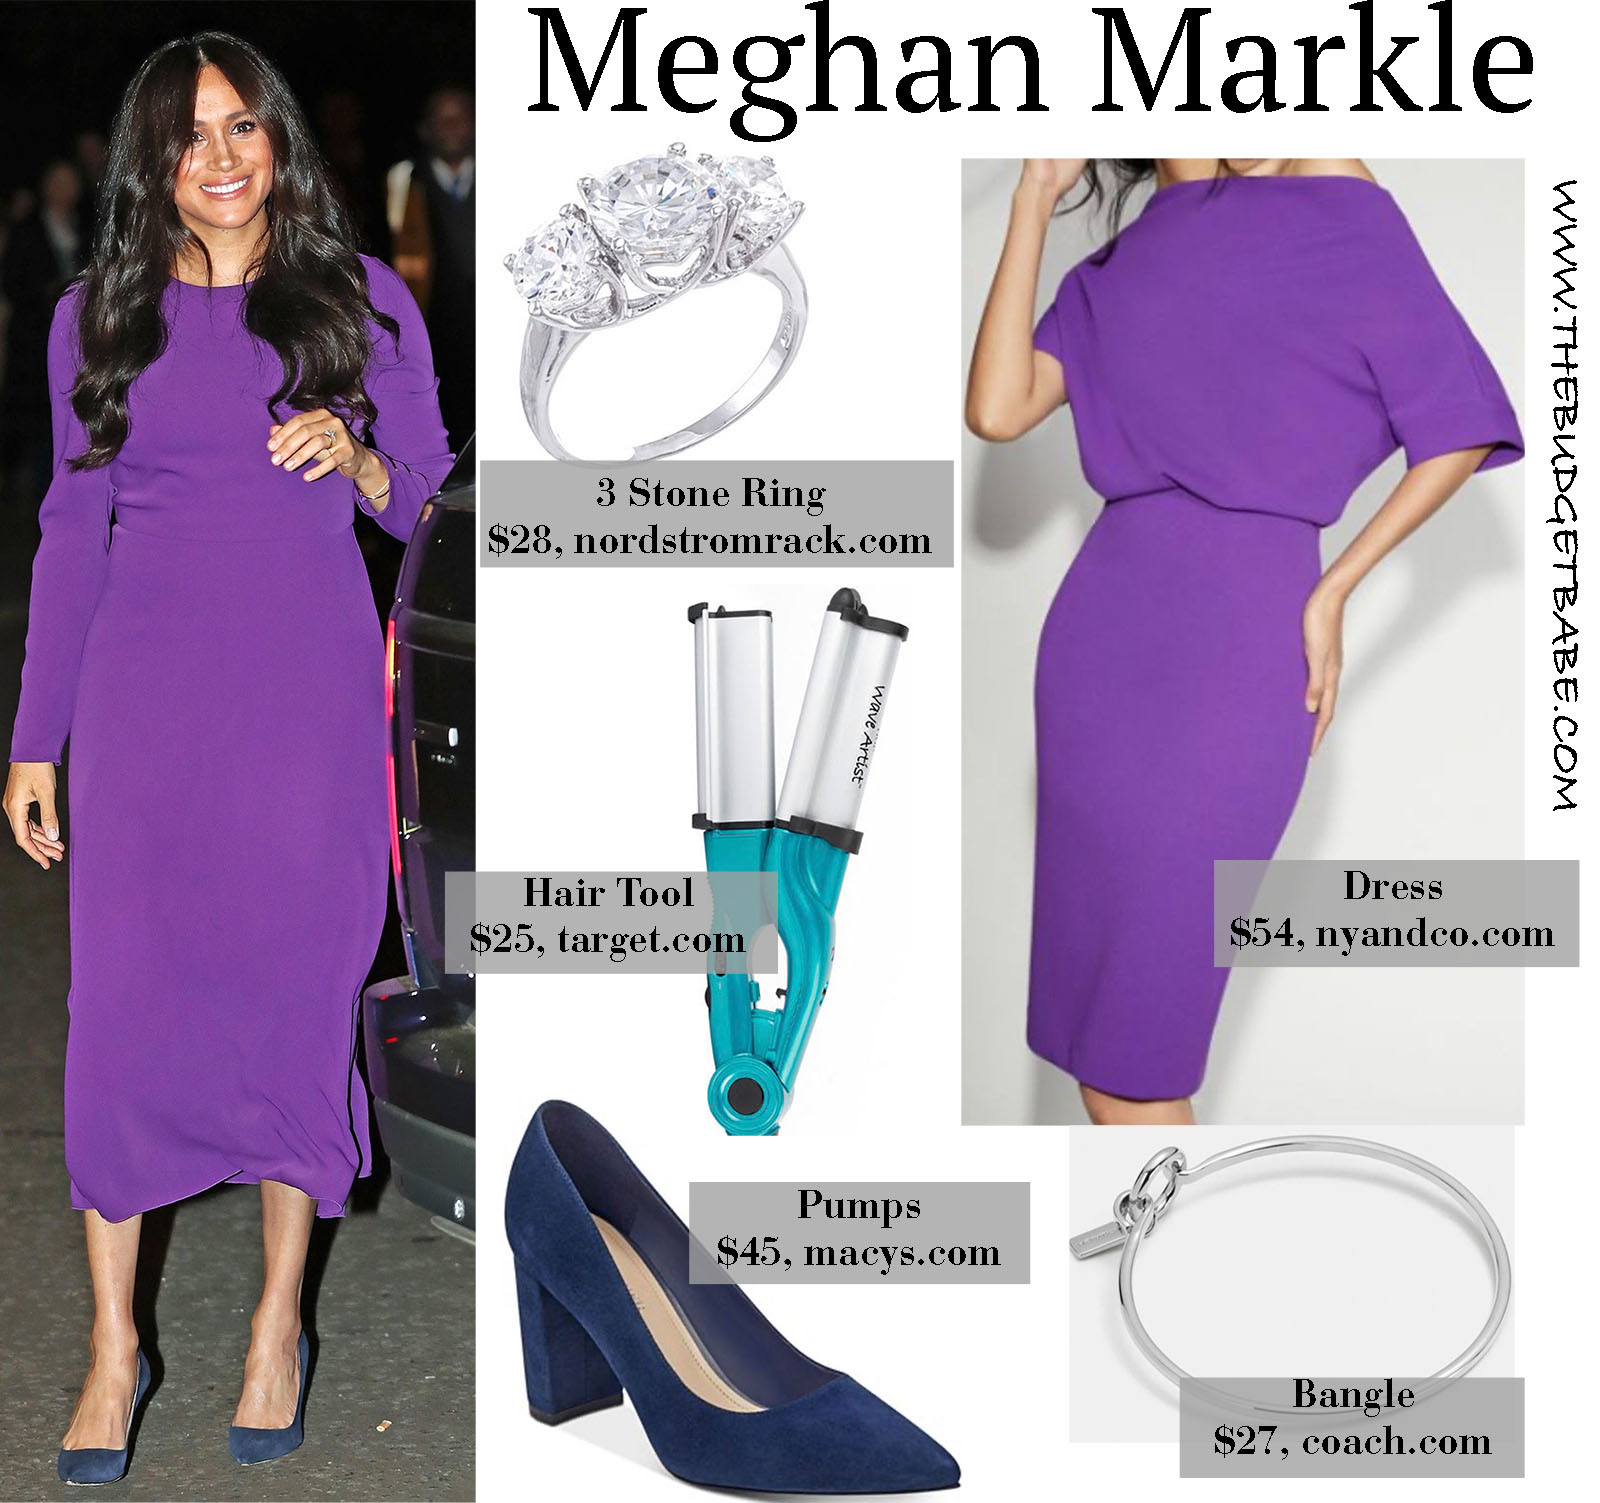 Meghan Markle steps out in a bright purple dress that we love!